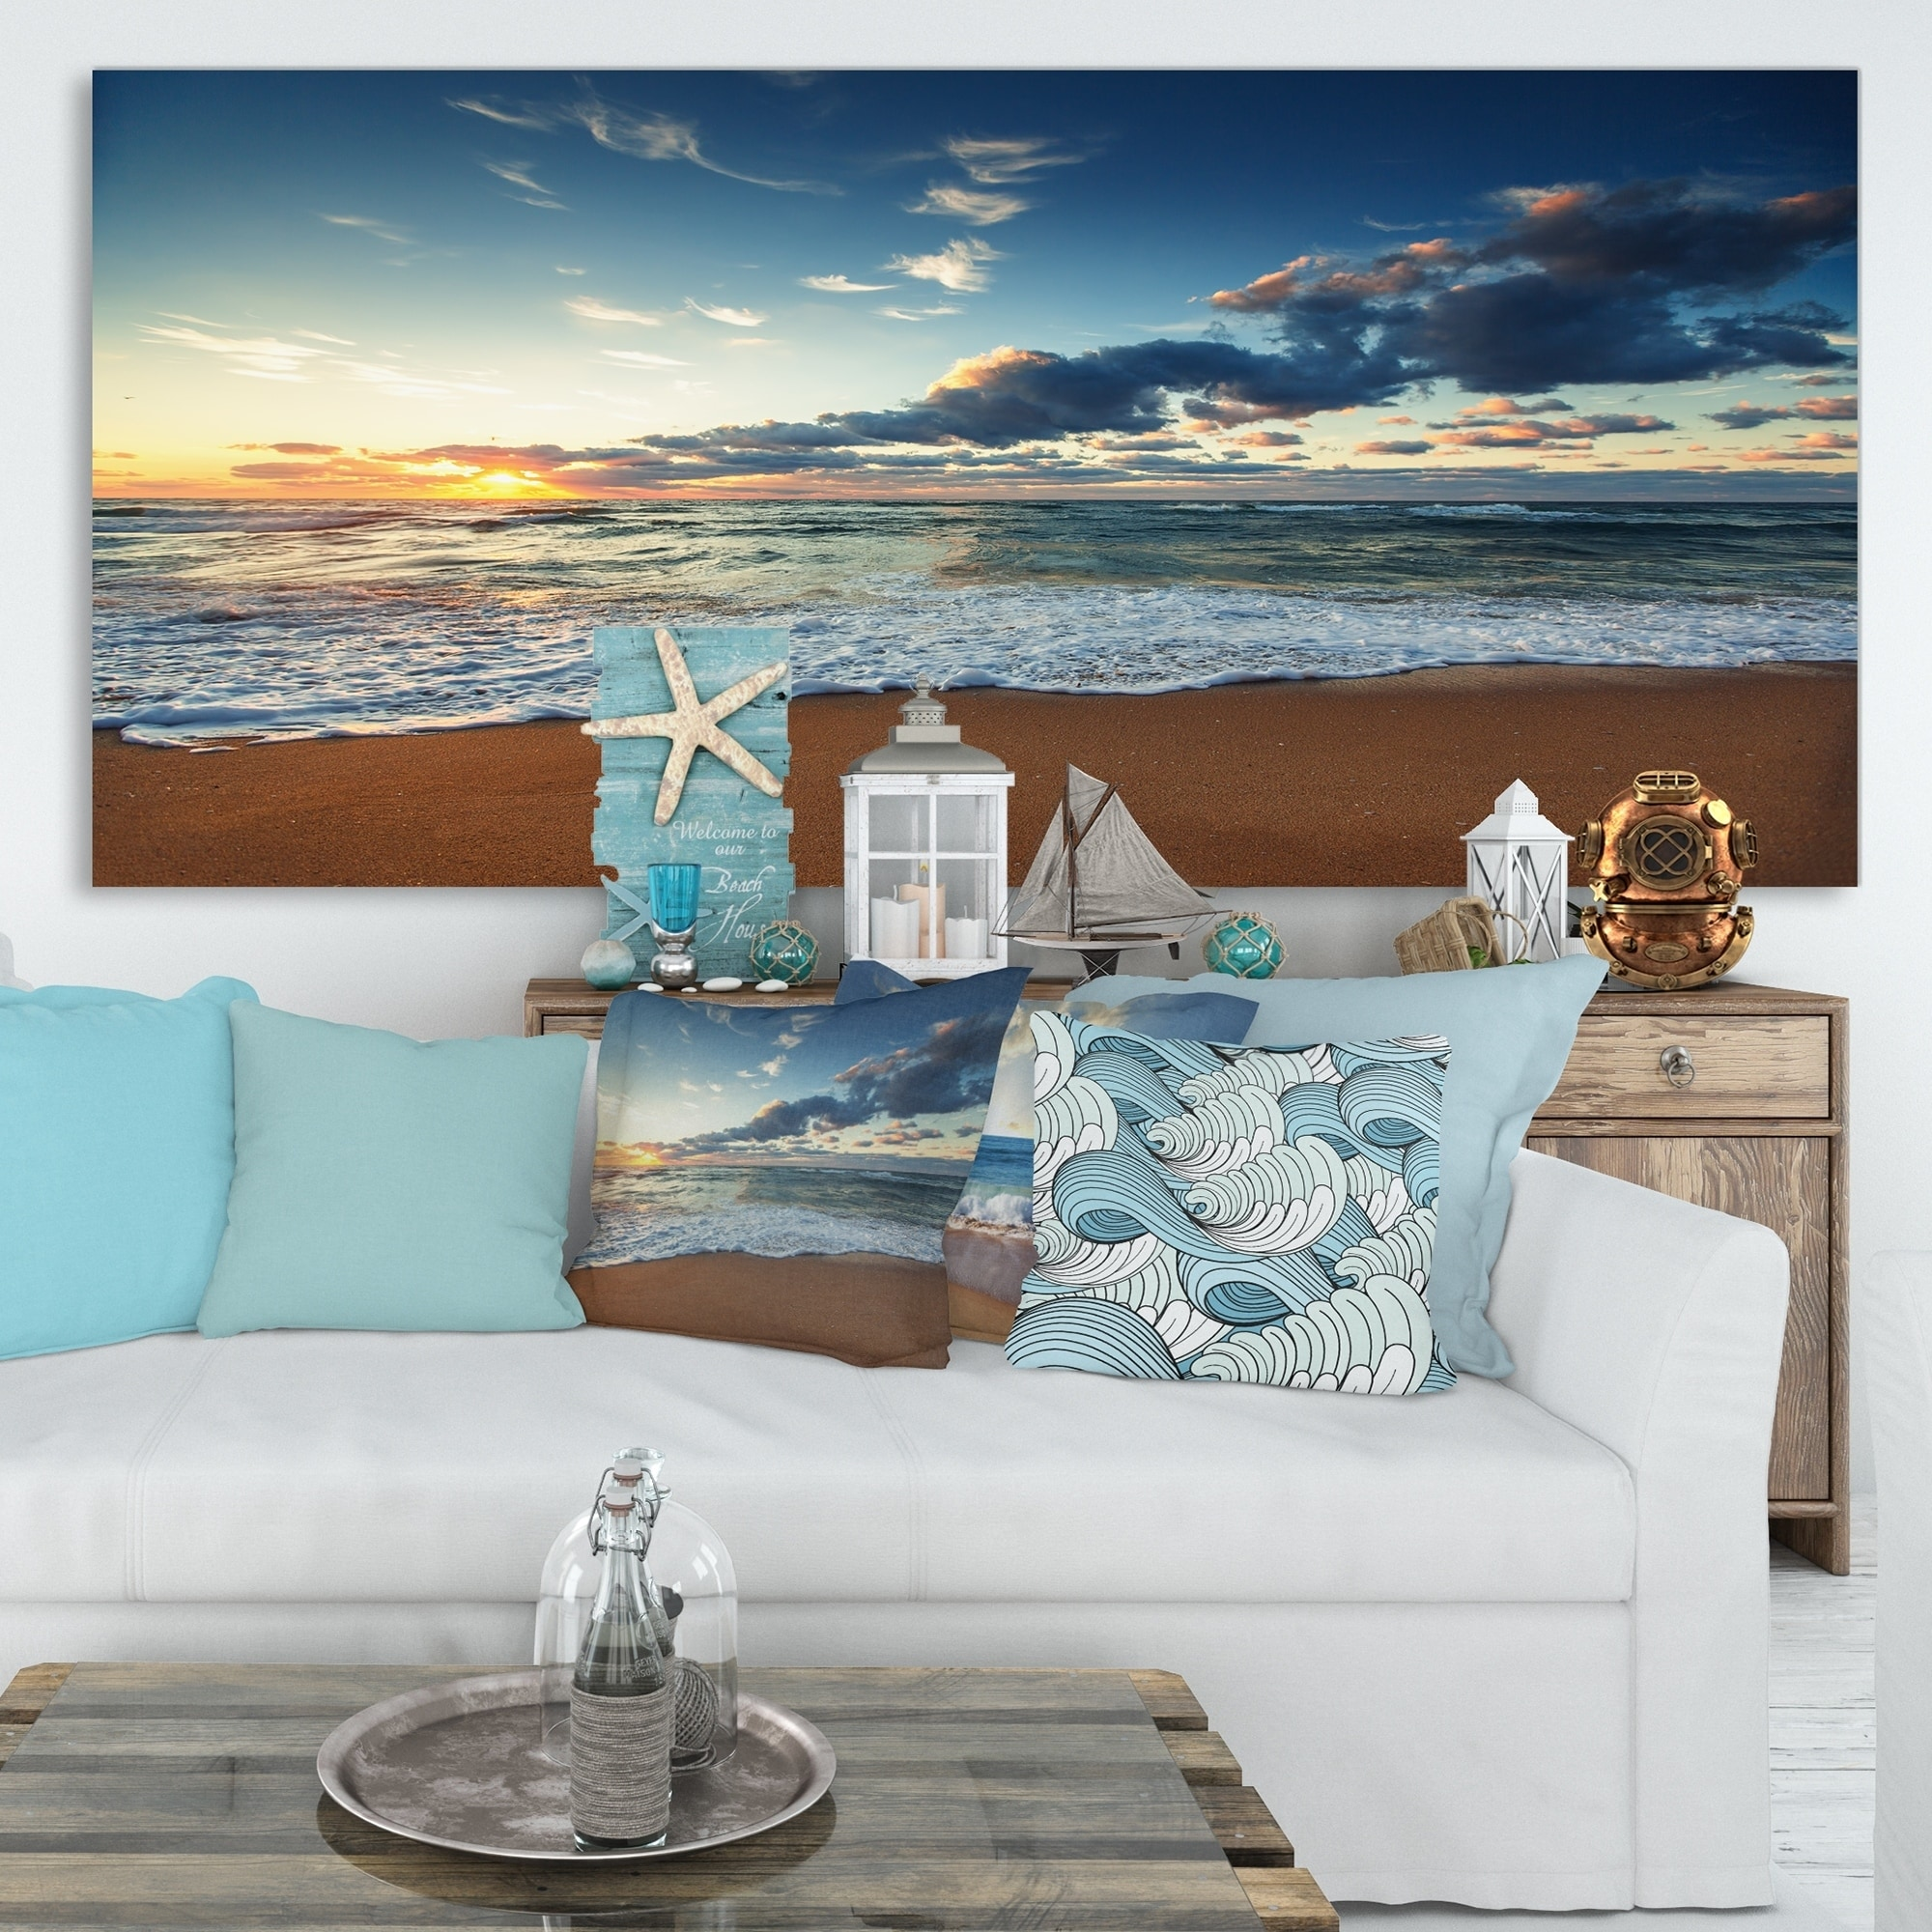 Sunrise-and-Glowing-Waves-in-Ocean-Seashore-Canvas-Wall-Small thumbnail 7